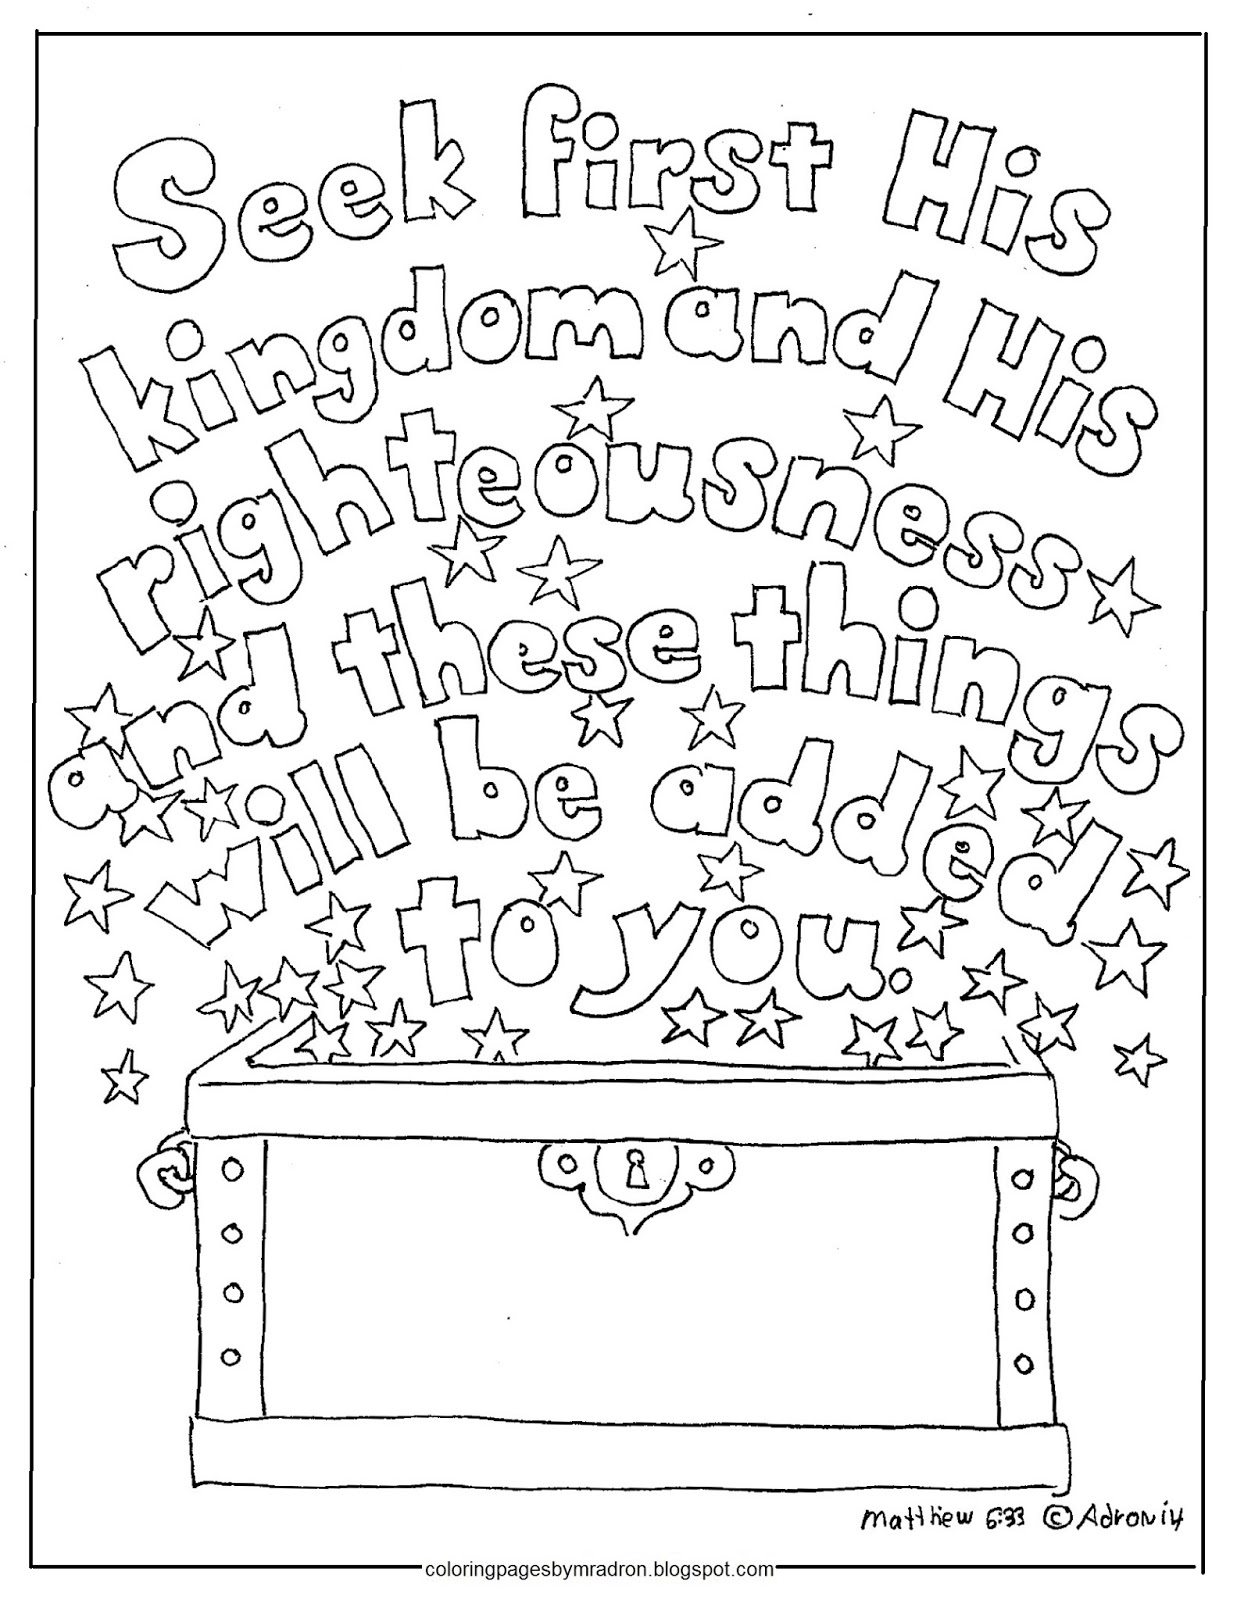 Coloring pages for kids by mr adron seek first his for Matthew 6 25 34 coloring page